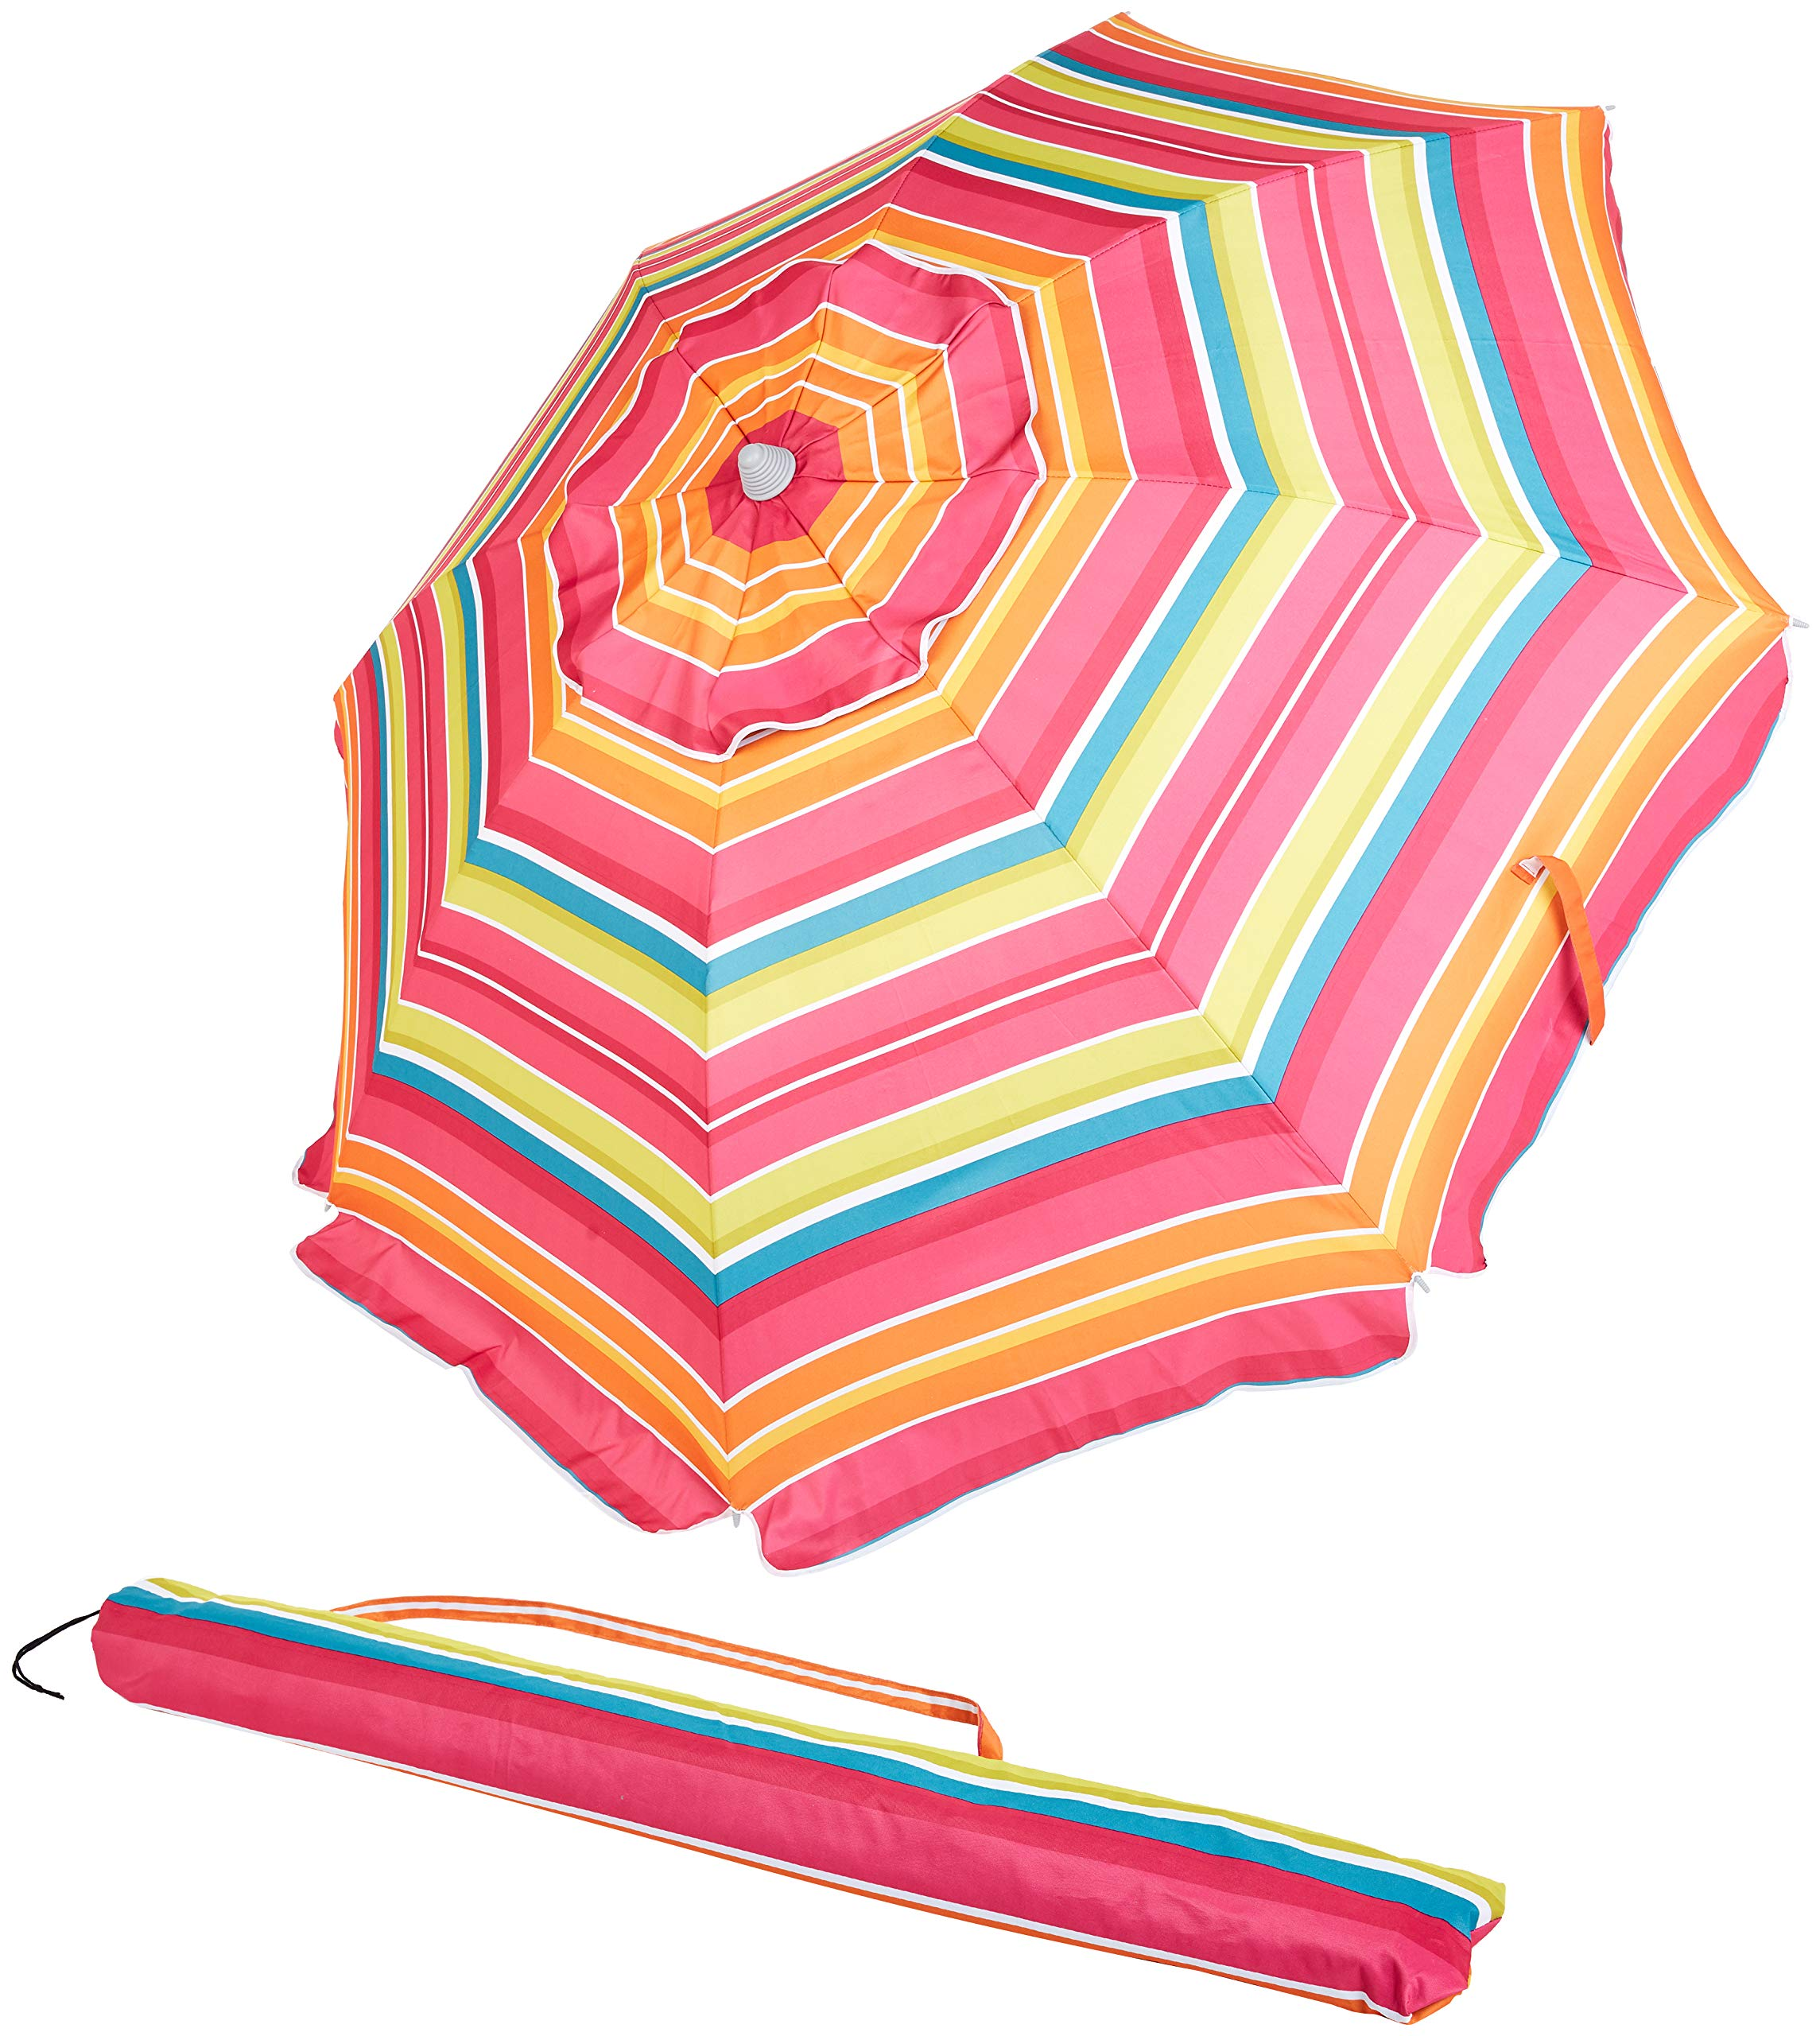 AmazonBasics Beach Umbrella - Pink/Yellow Striped by AmazonBasics